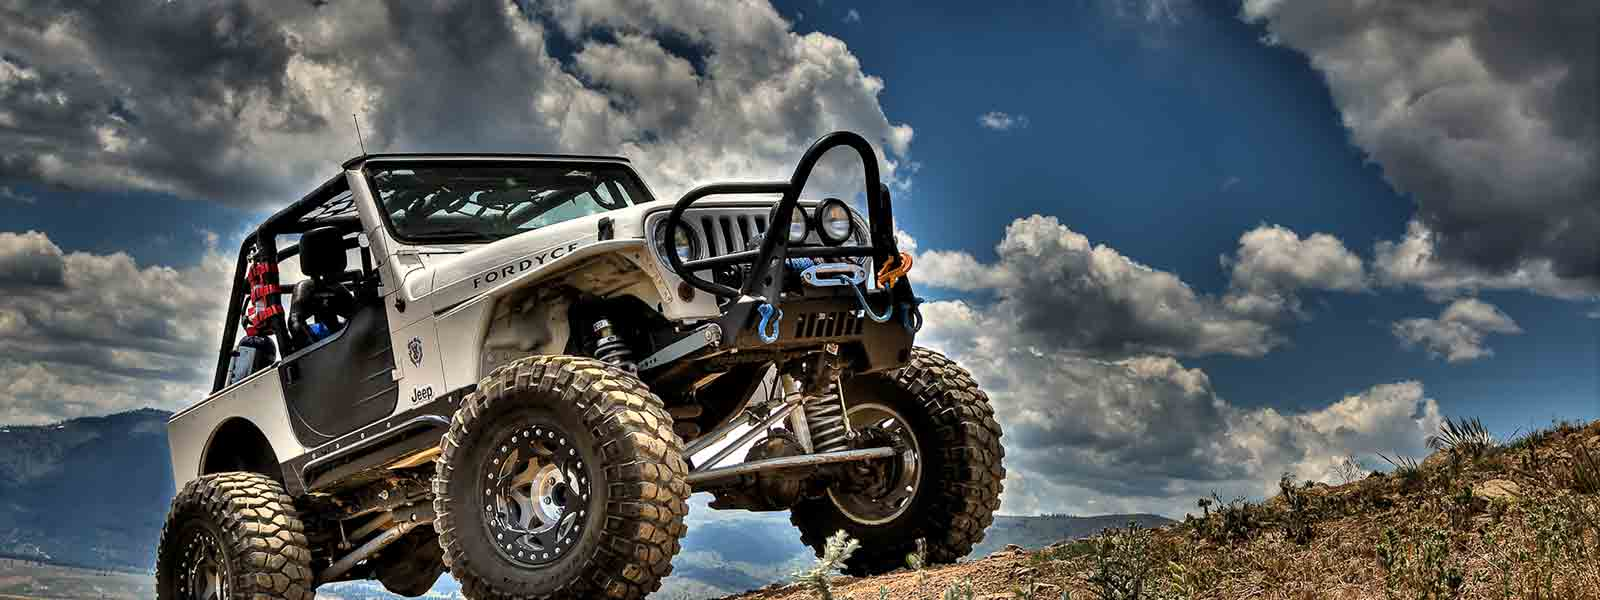 CP Offroad vehicle